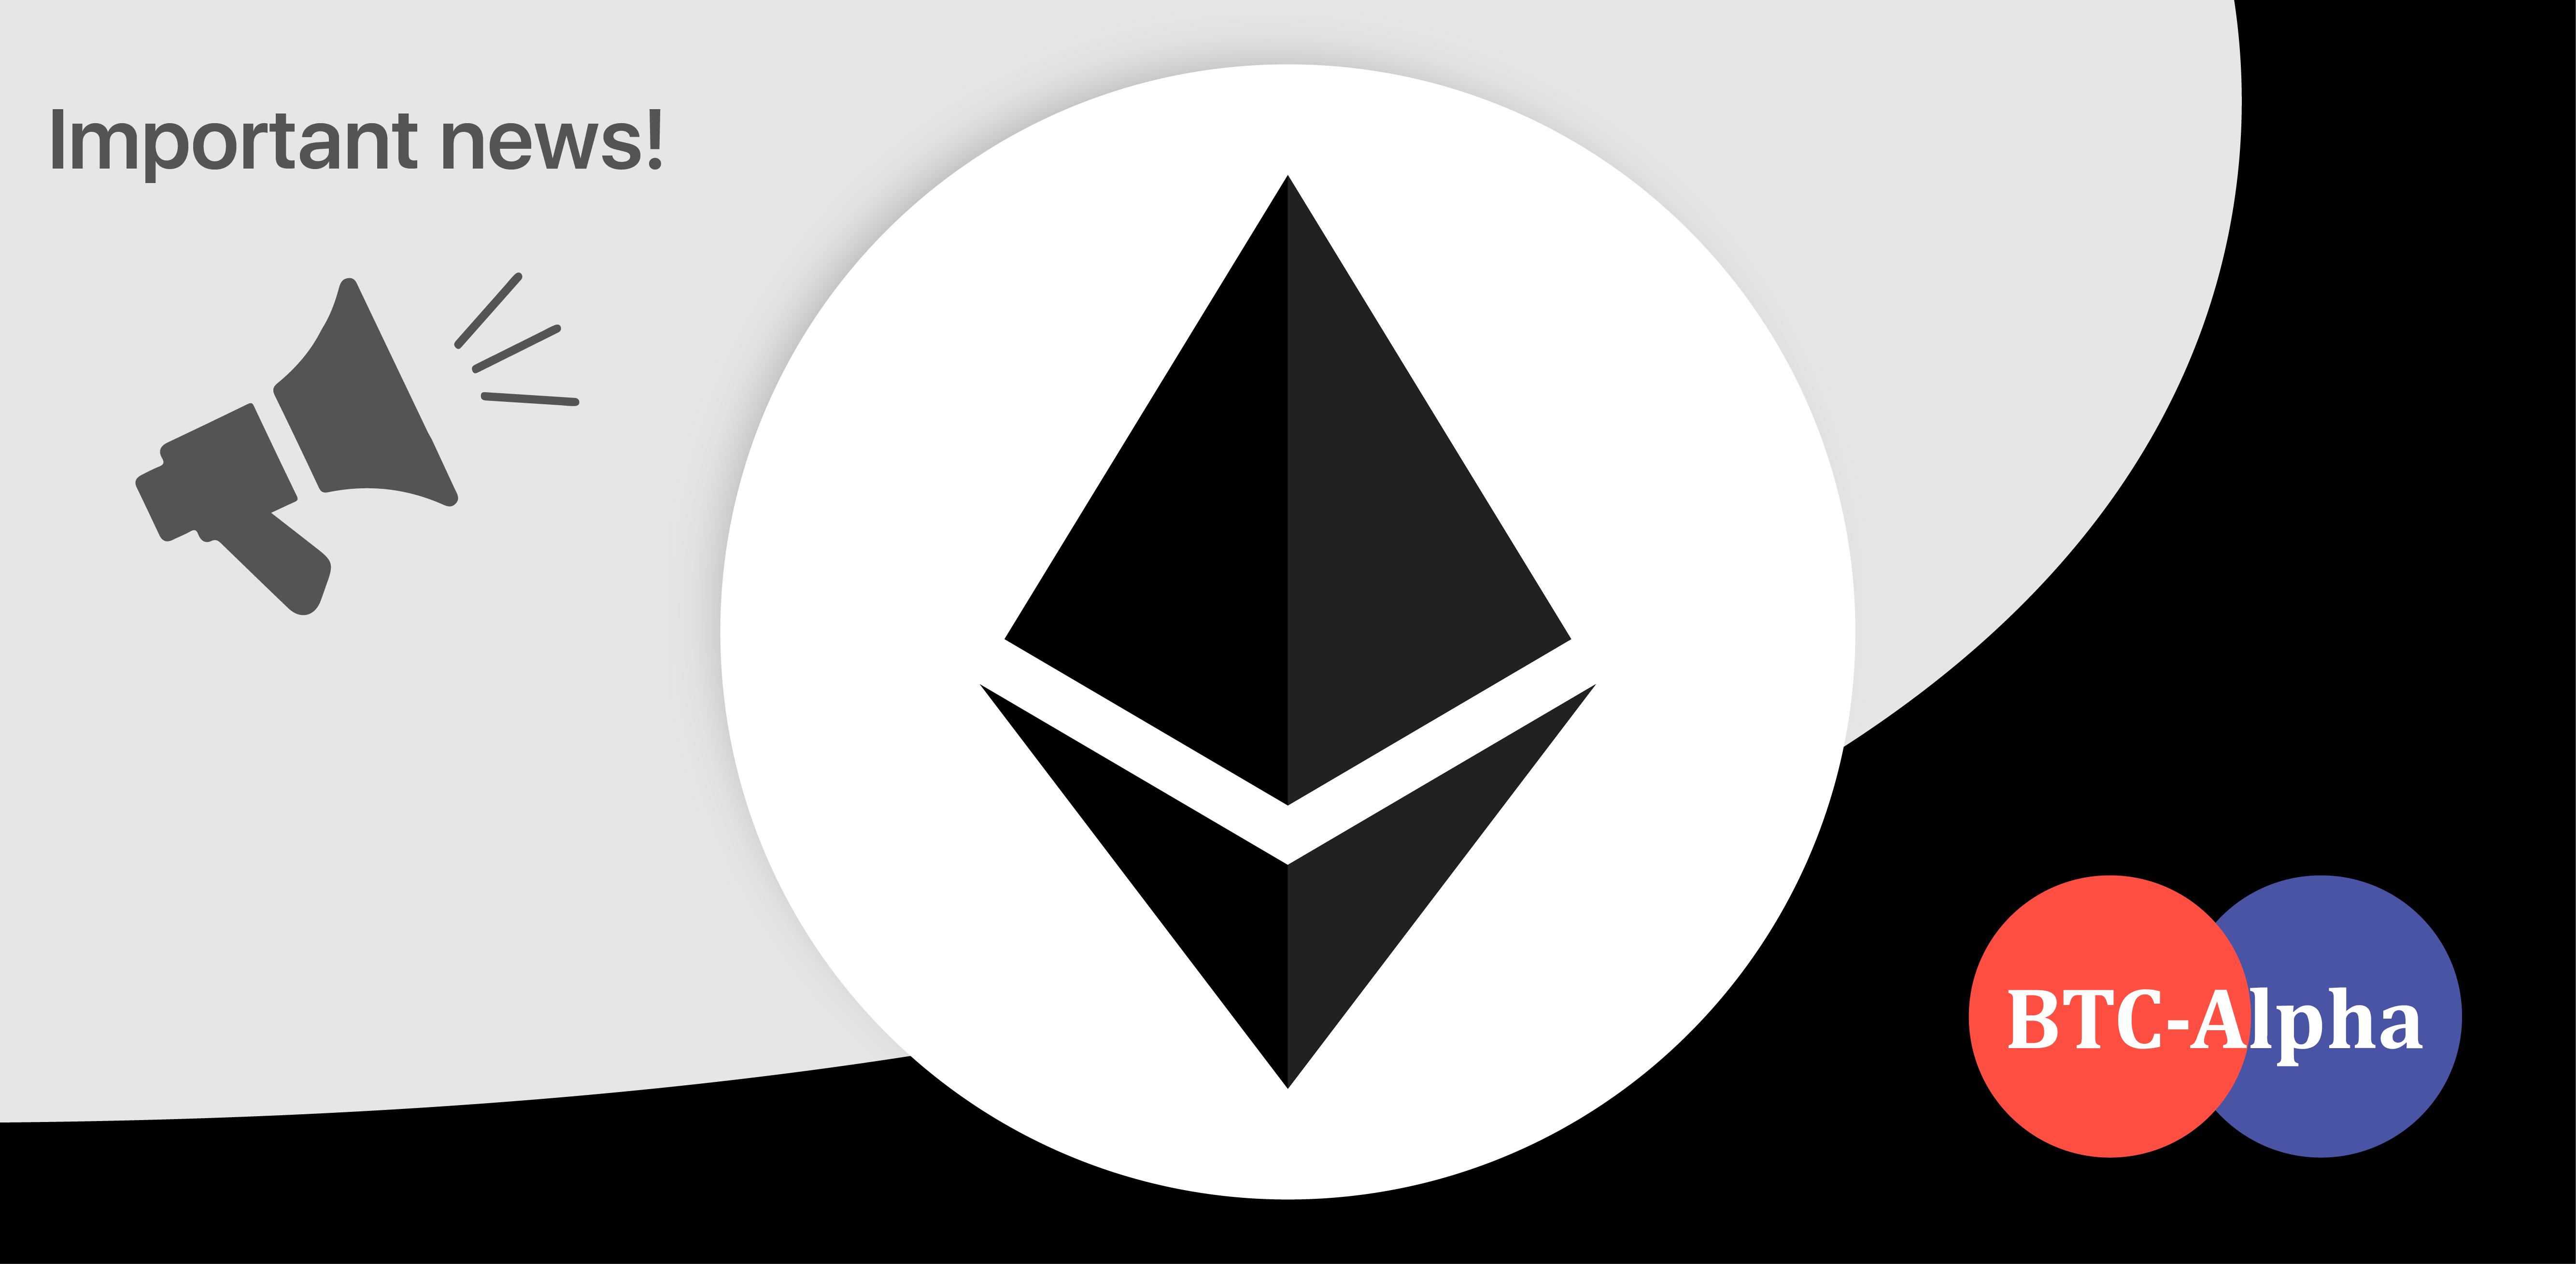 Disabling trading pairs with Ethereum (ETH)